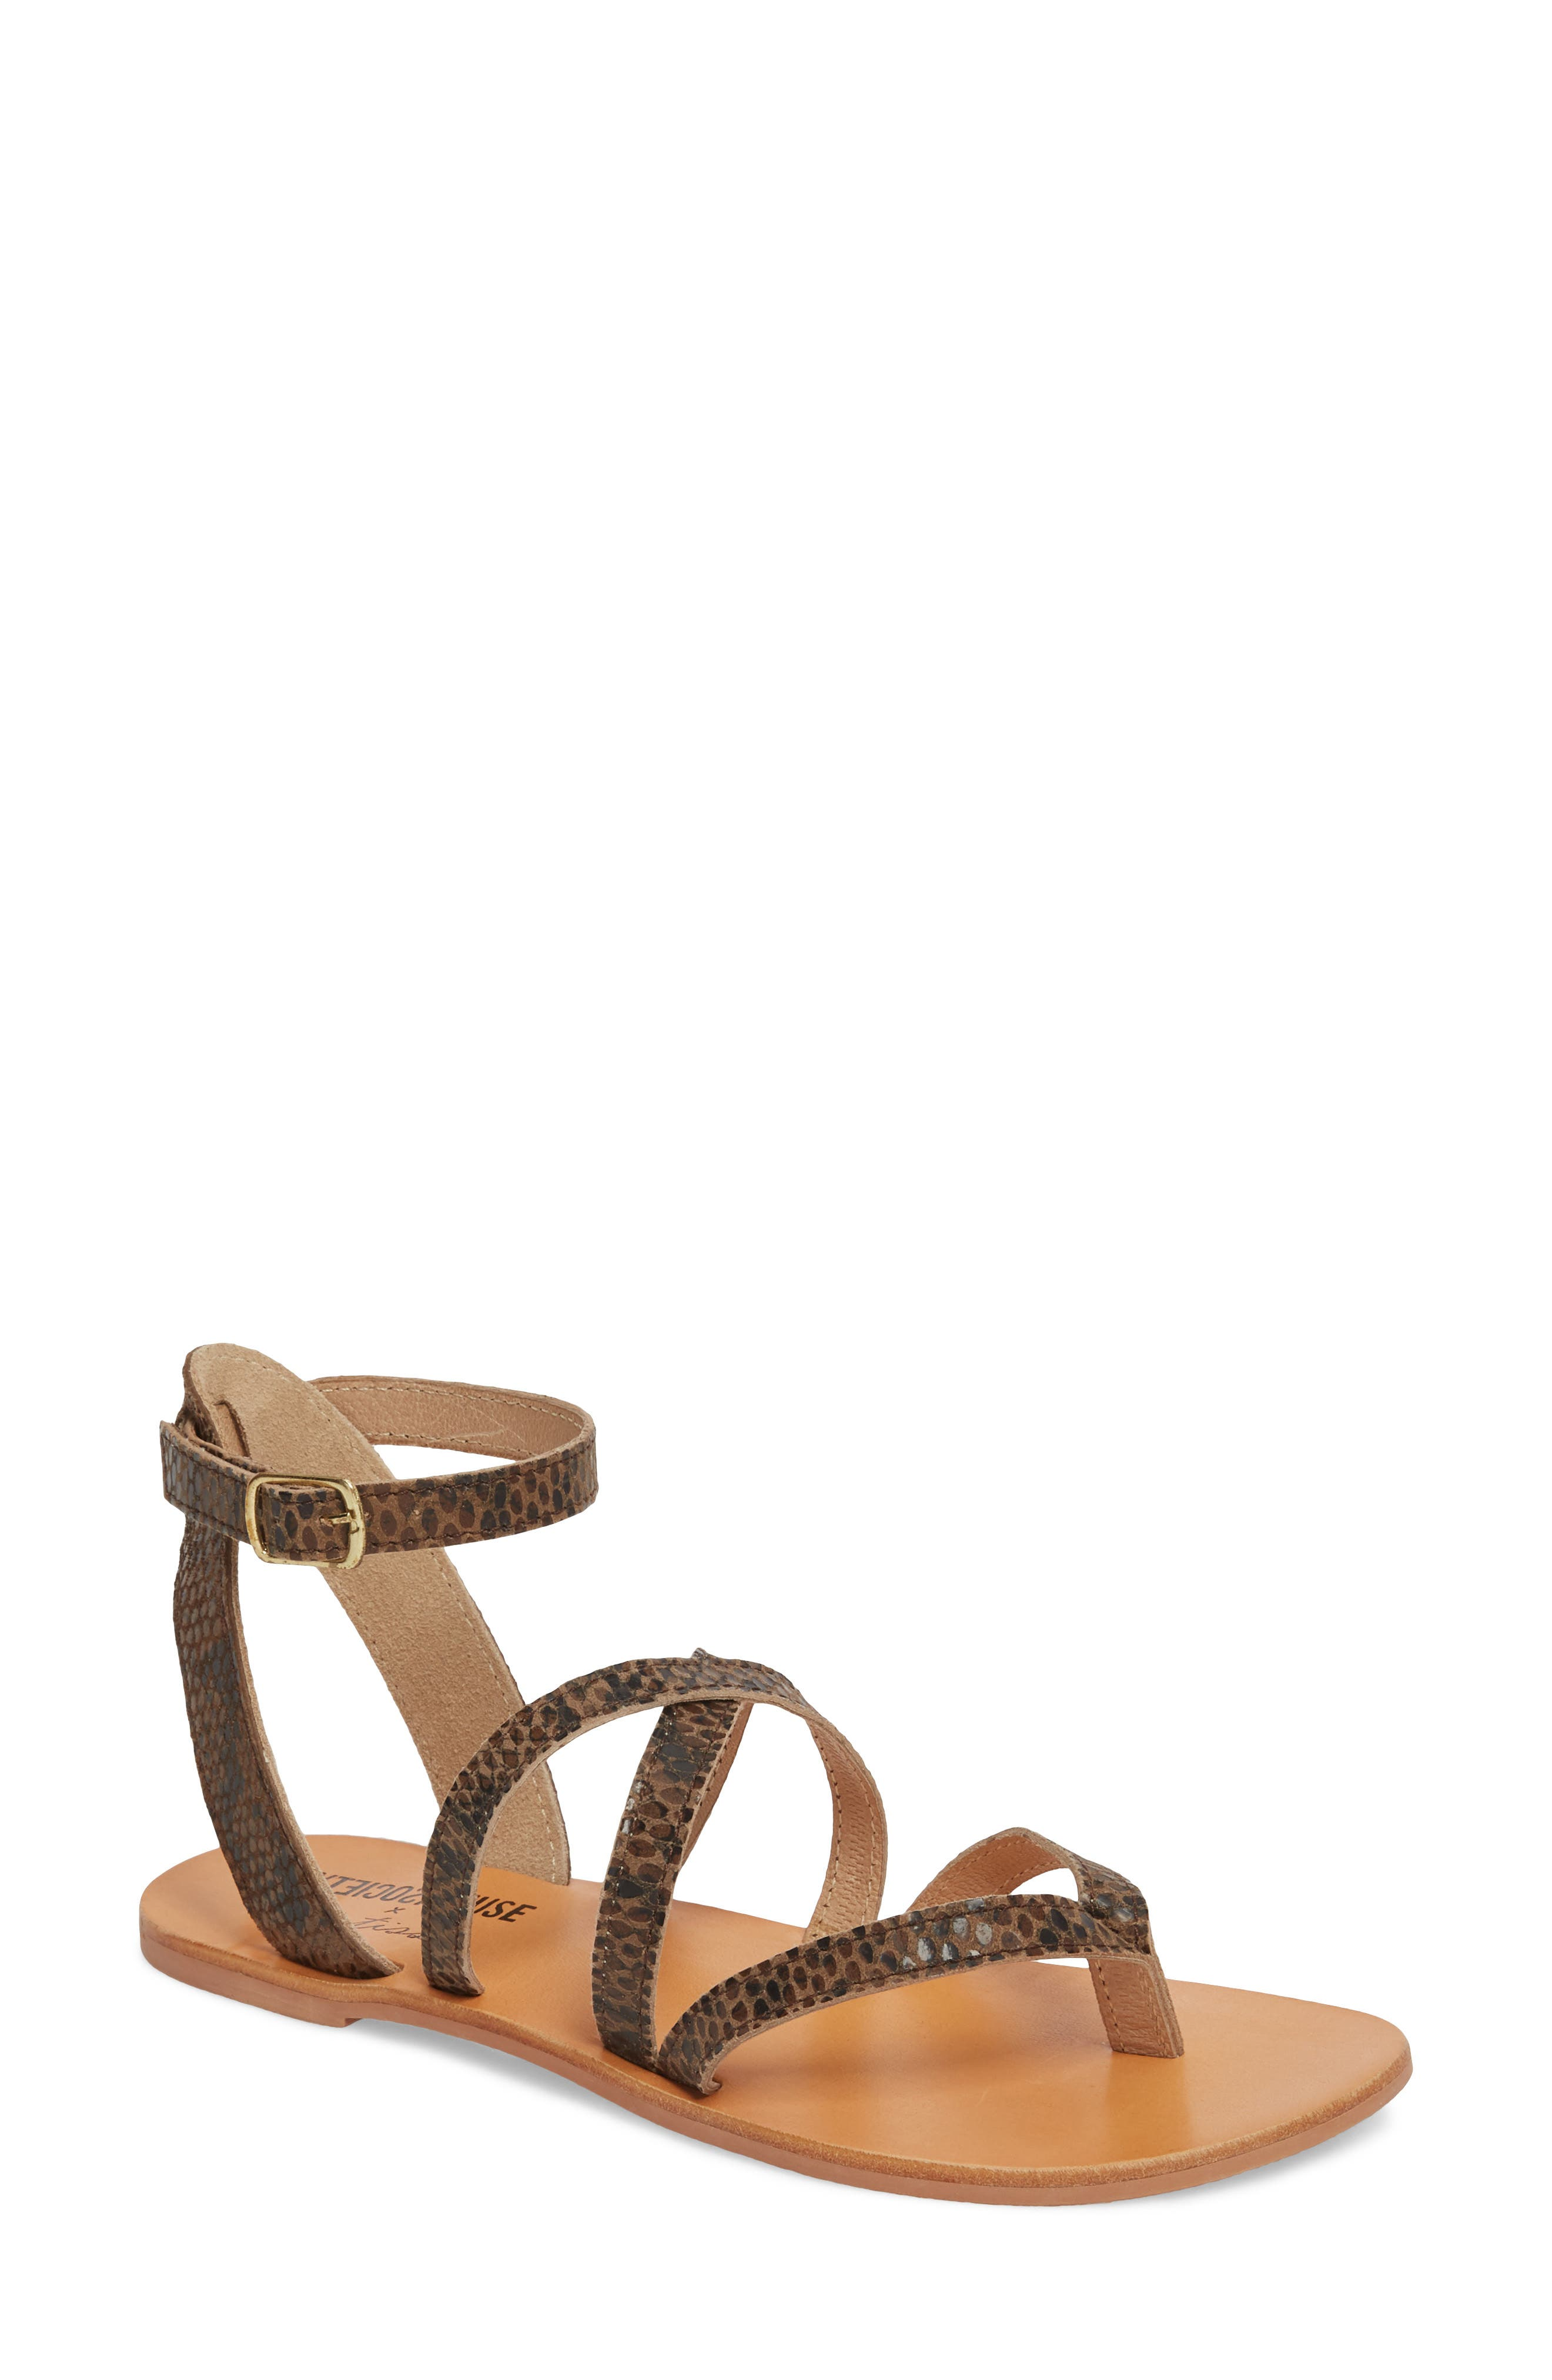 Strappy Sandal,                         Main,                         color, Brown Snake Leather